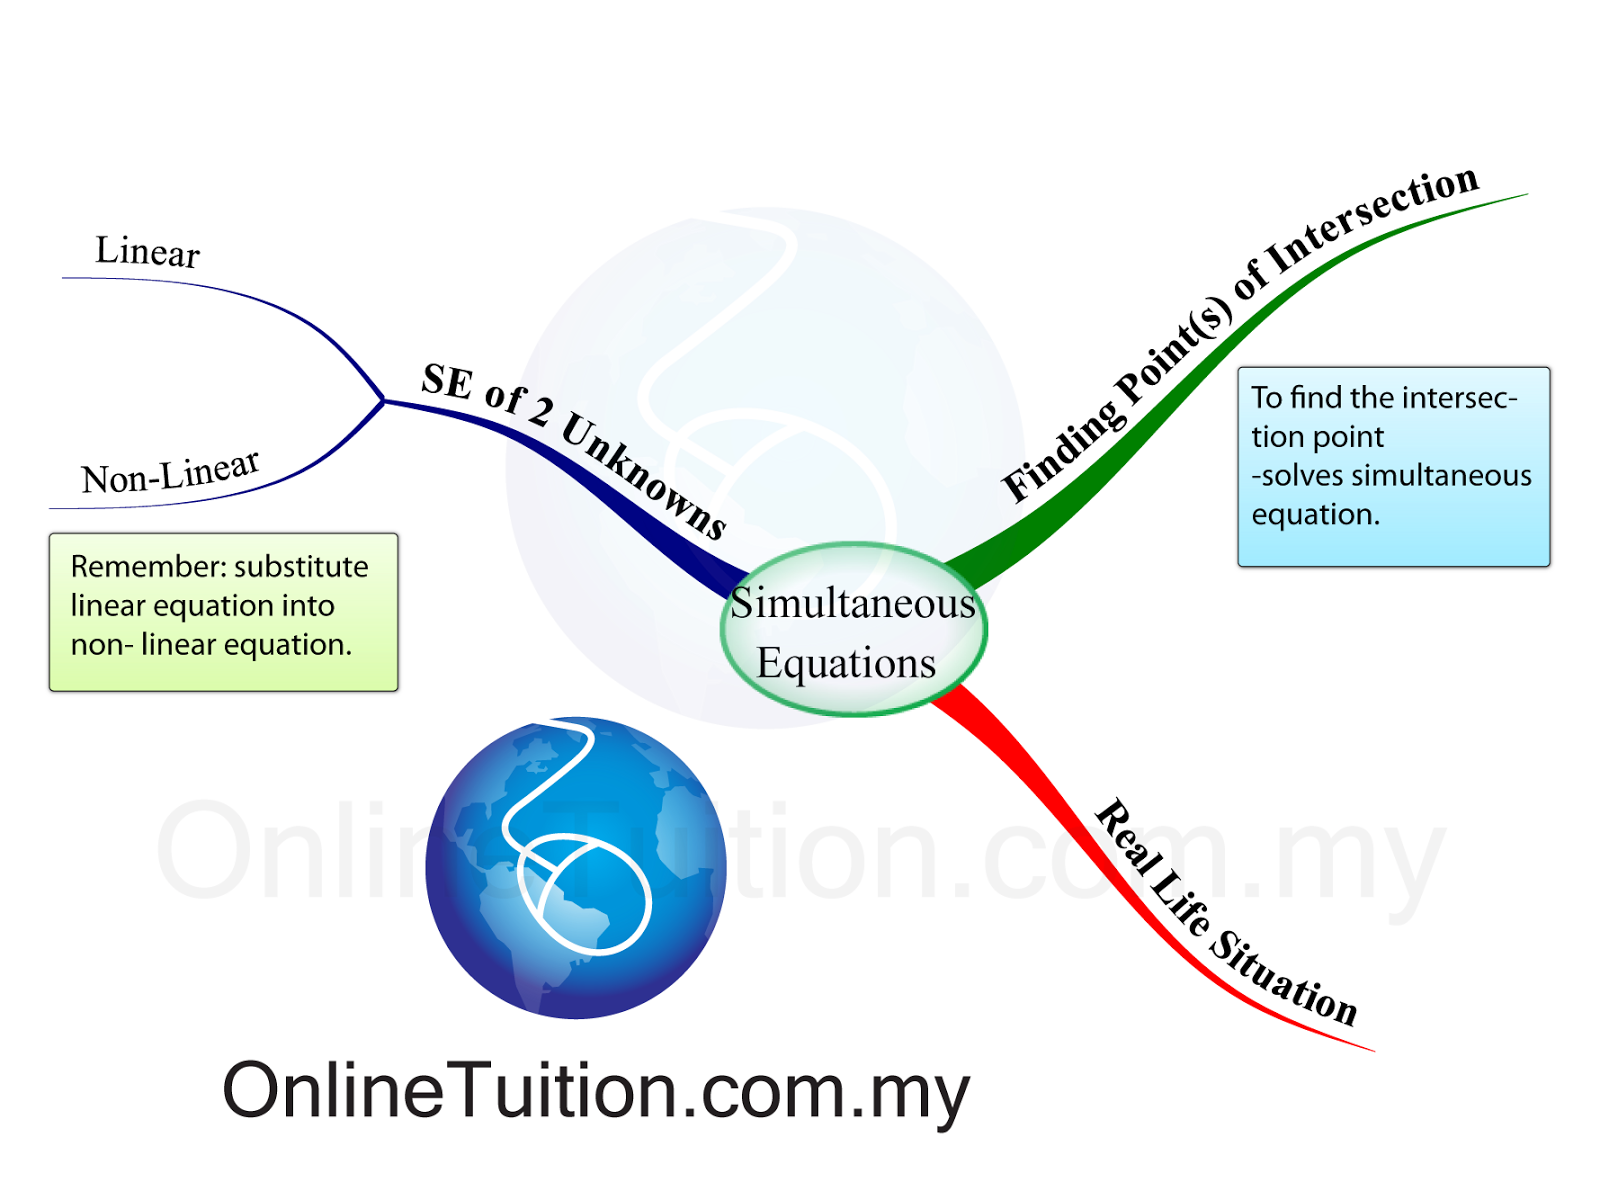 Simultaneous Equation - Mind Map - SPM Additional Mathematics on map system, map line, map data, blood pressure, pulse pressure, map scale, map distance, human body temperature, map calculator, heart rate, map figure, intracranial pressure, map material, map formula, map model, map statistics, map symbol, map area, map table, map example, korotkoff sounds, map ratio, map math, pulmonary artery pressure, map pattern, map graph,